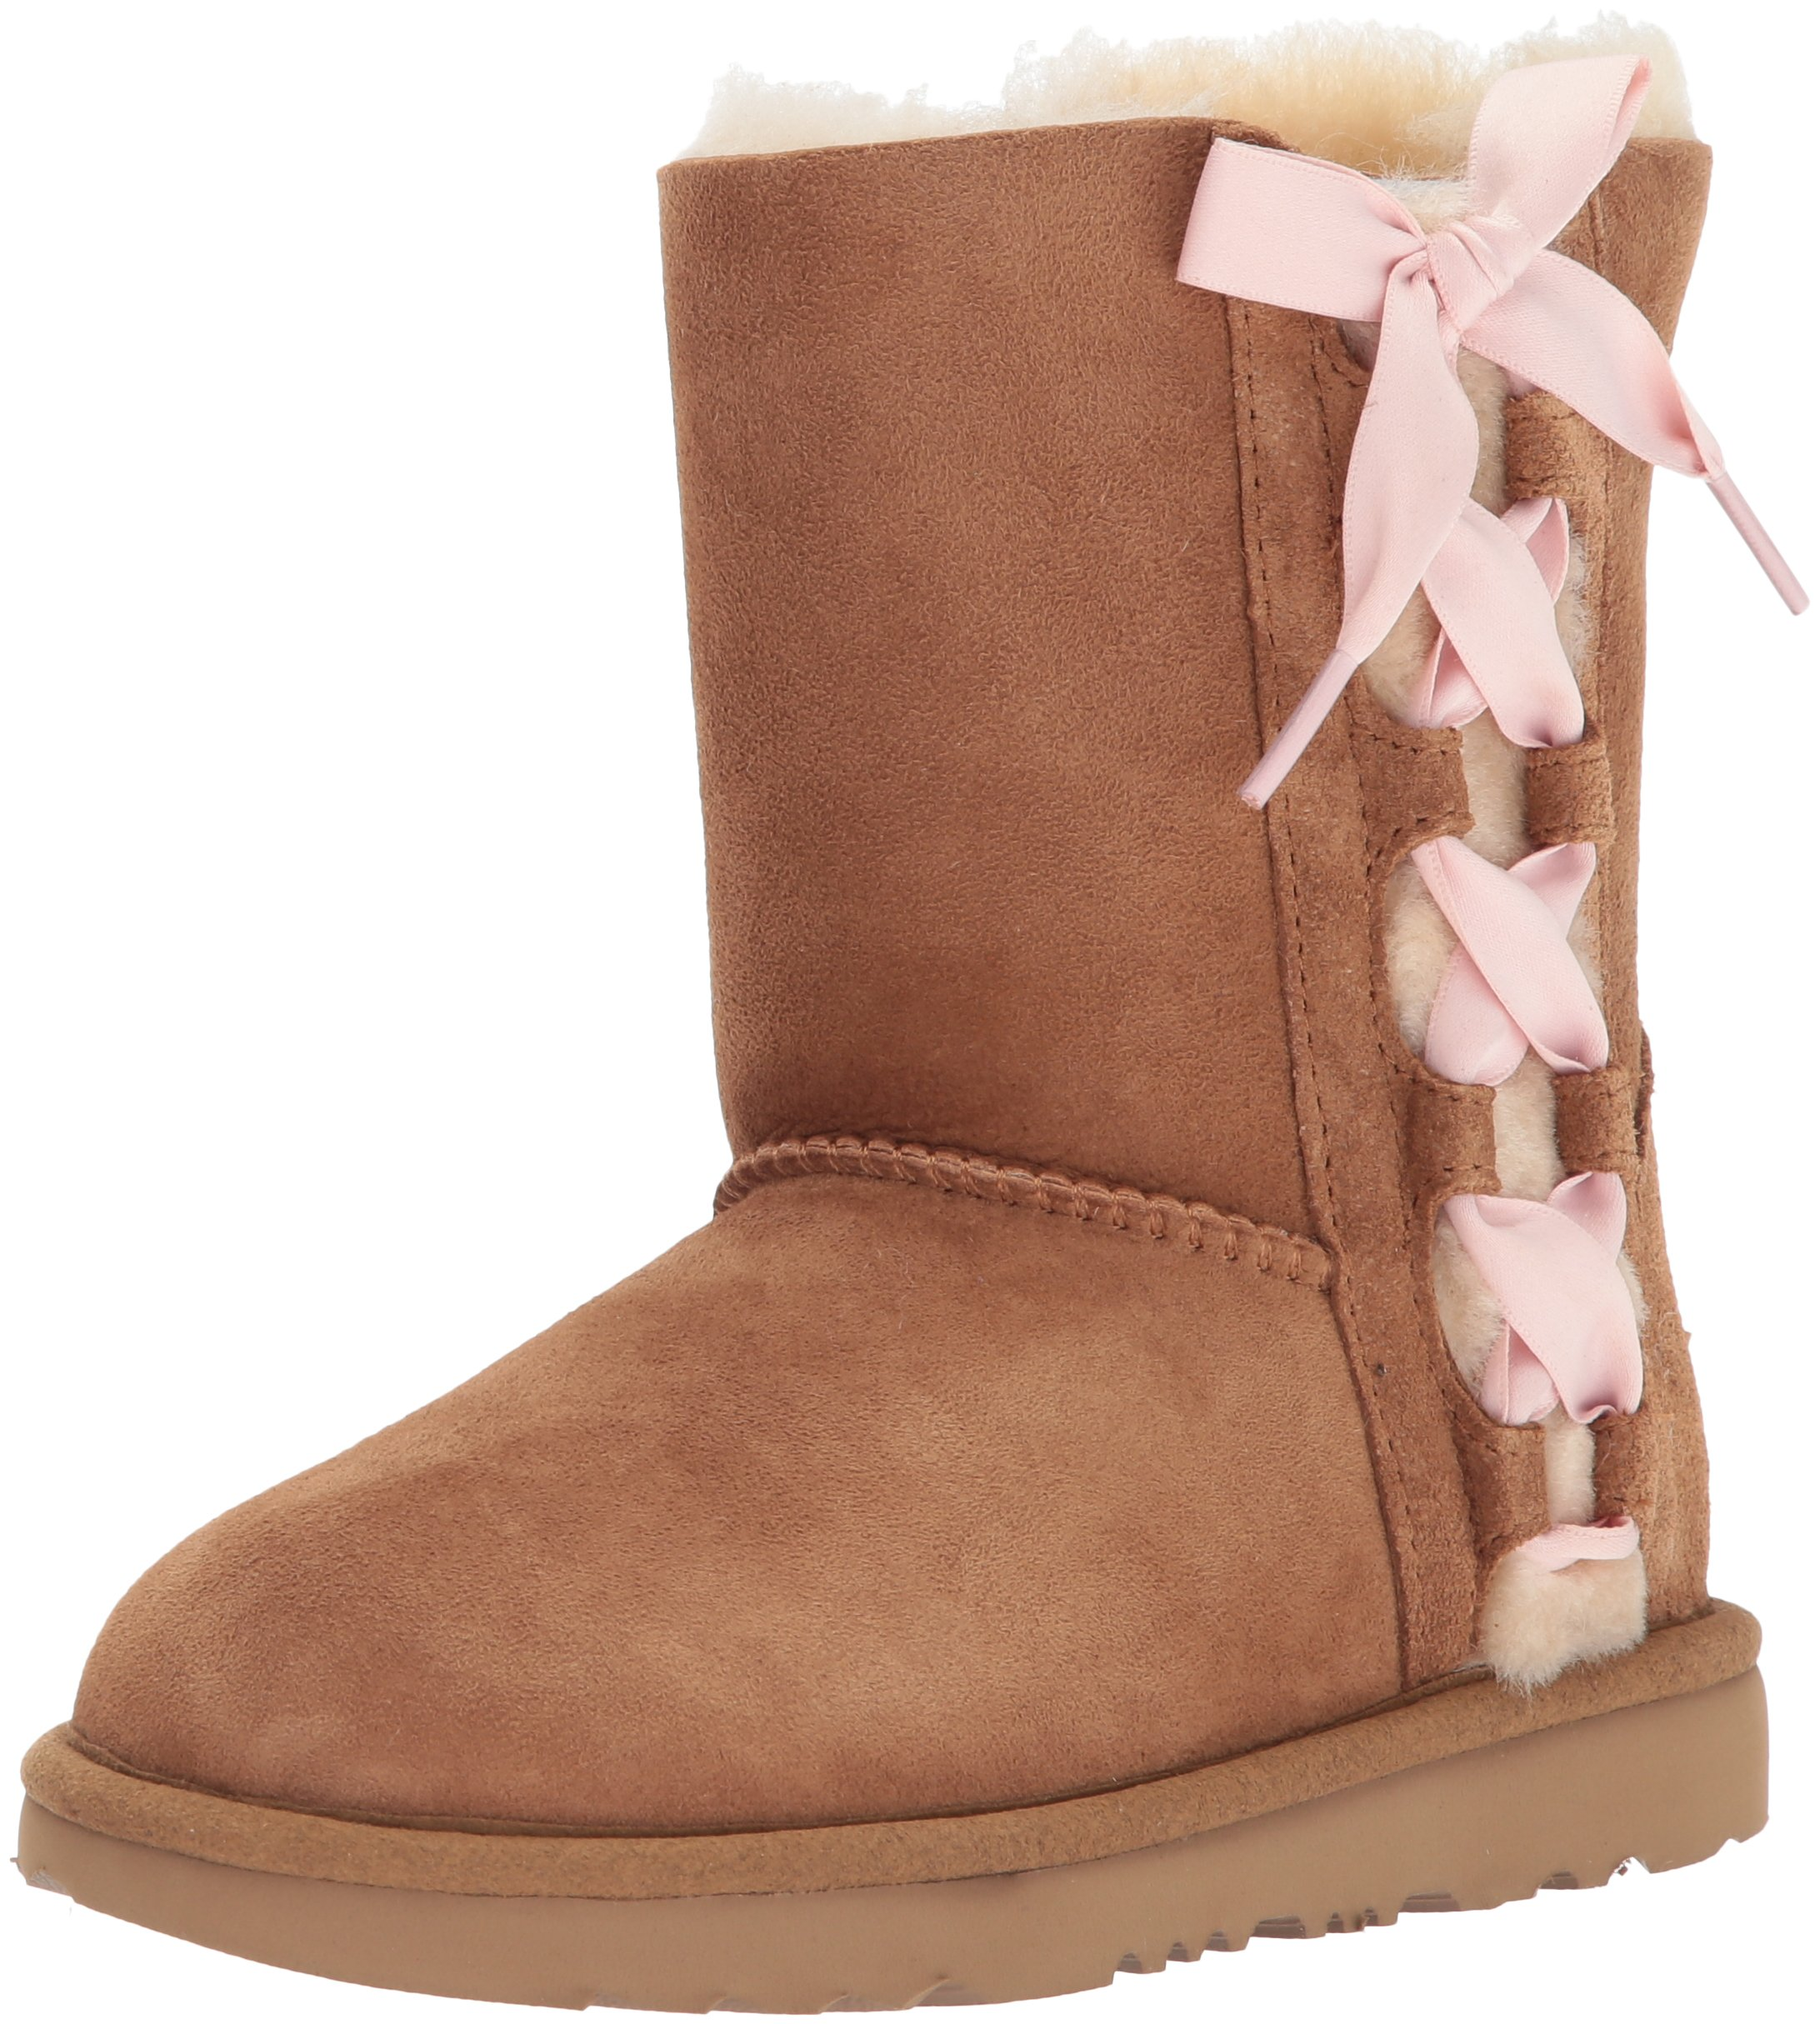 UGG Girls K Pala Pull-on Boot, Chestnut, 13 M US Little Kid by UGG